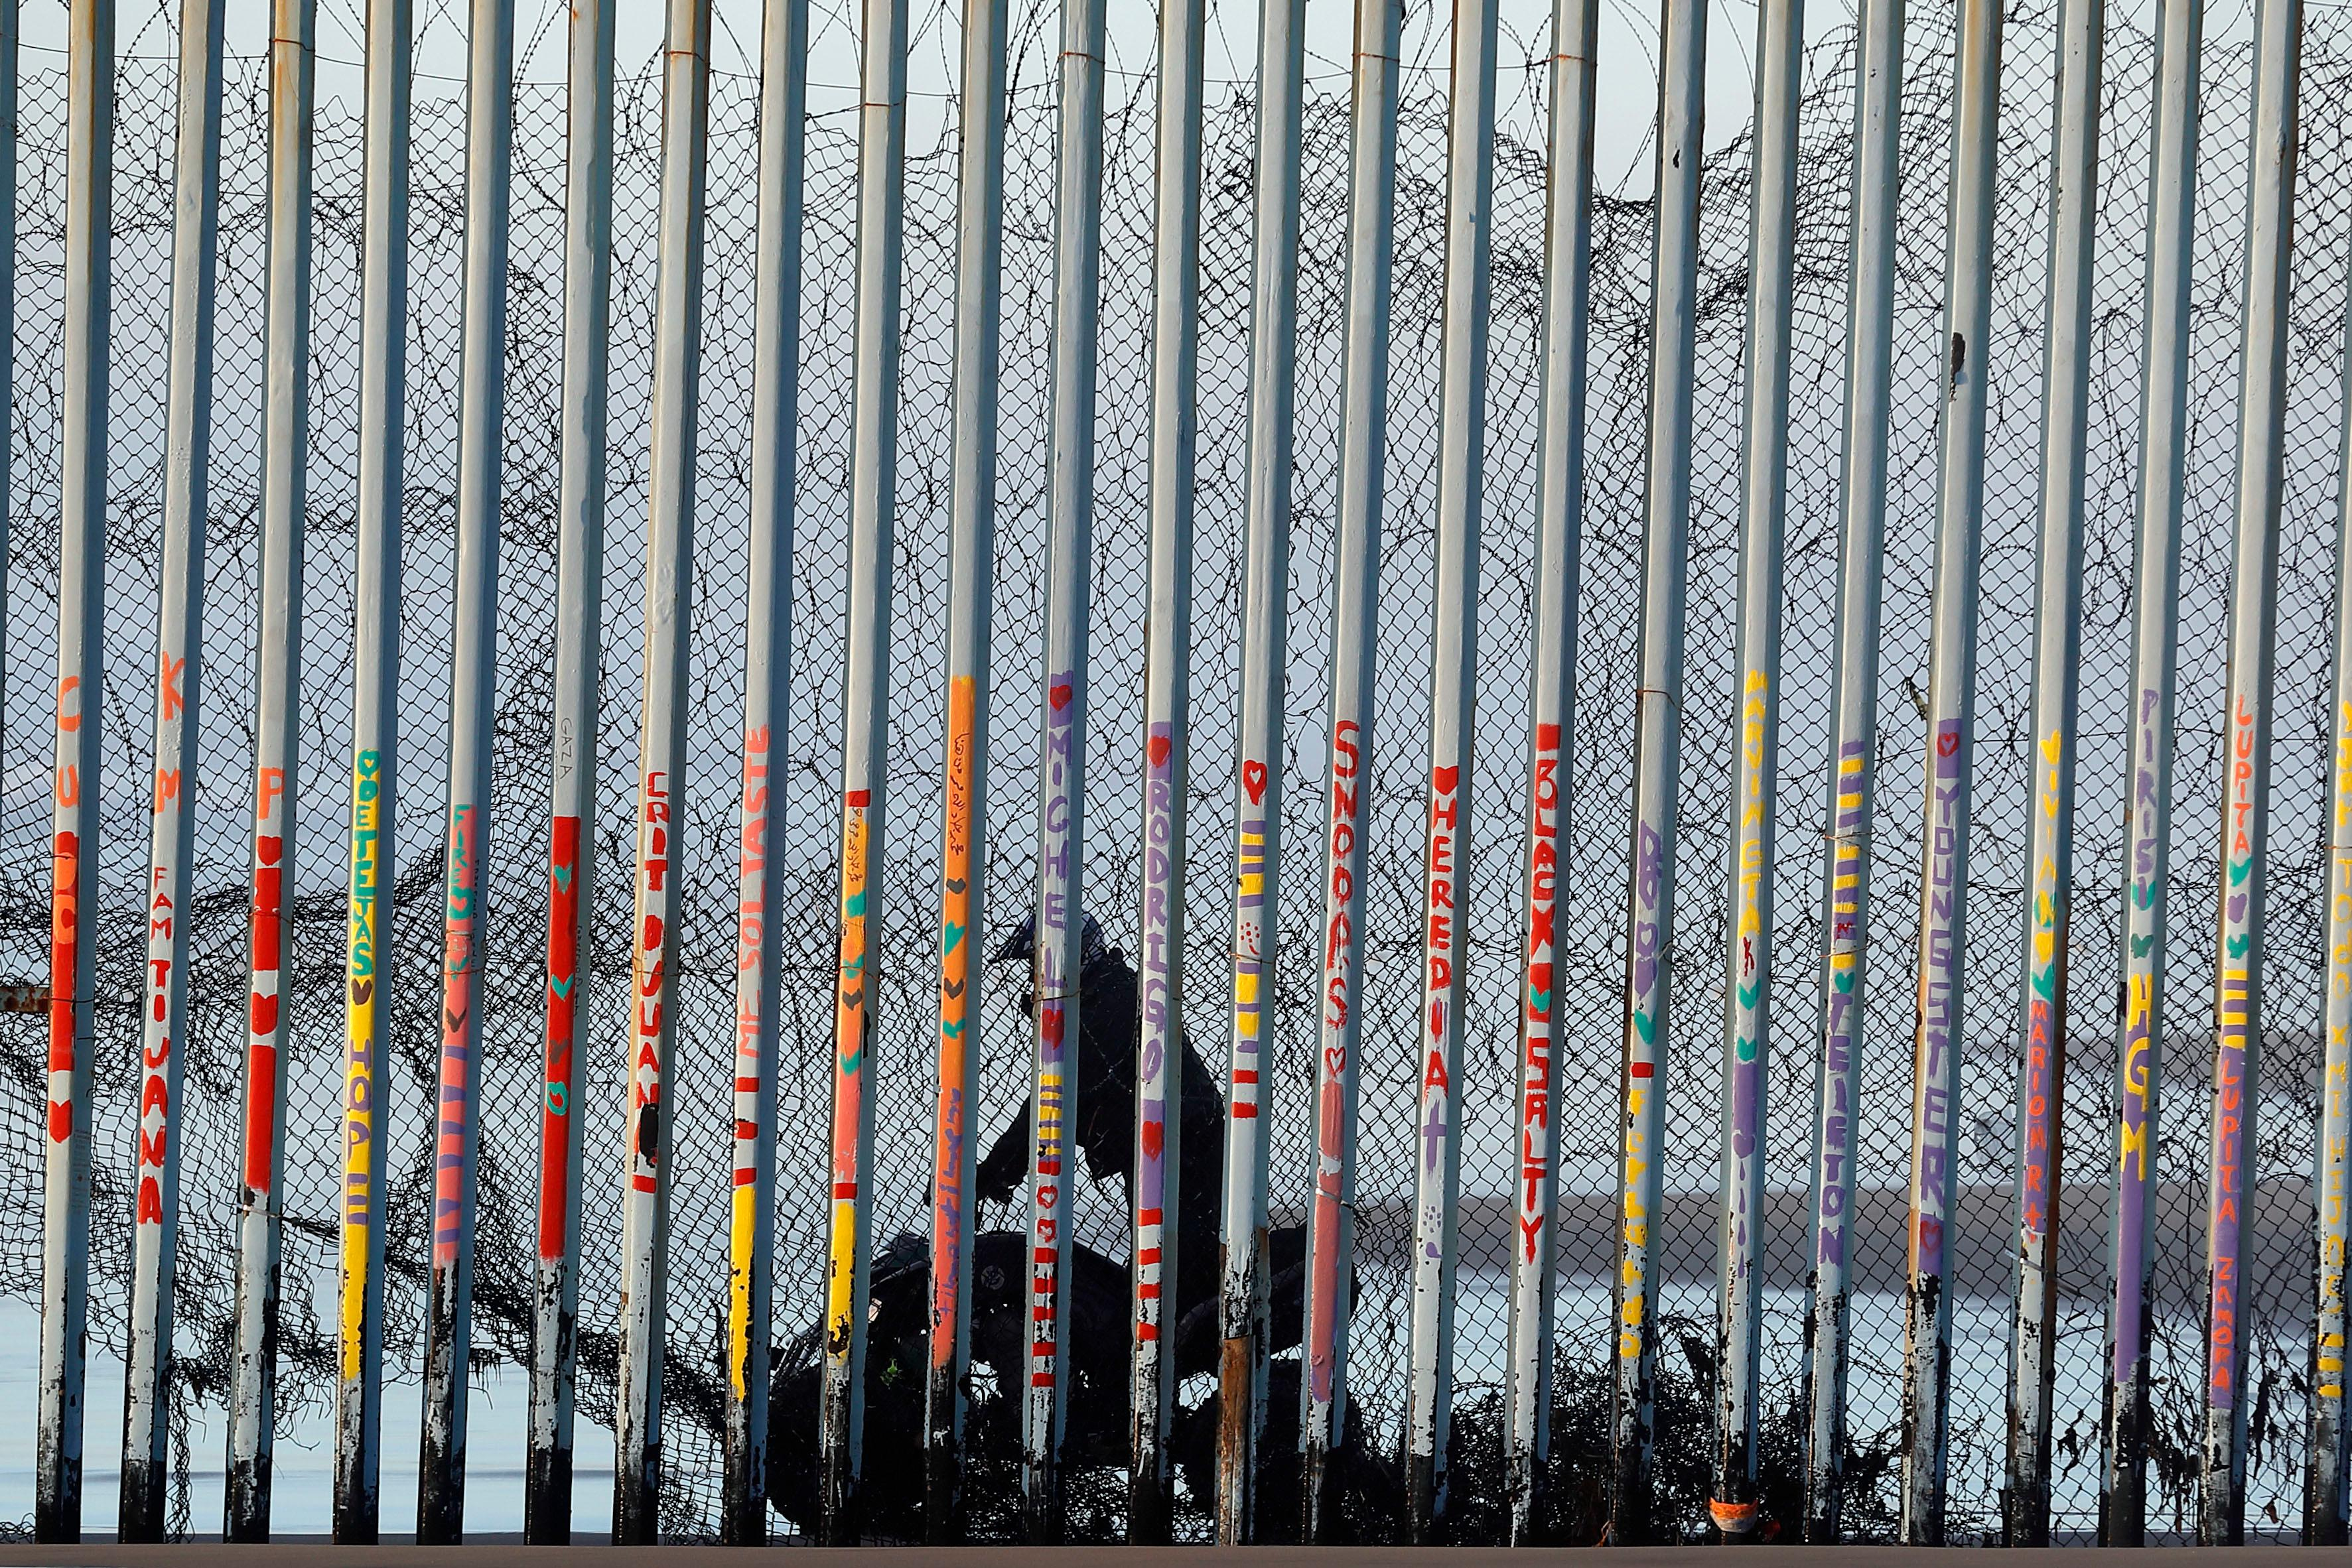 A U.S. Border Patrol agent rides a vehicle on the beach in San Diego, Wednesday, Jan. 9, 2019, seen through the border wall from Tijuana, Mexico. (AP Photo/Gregory Bull)